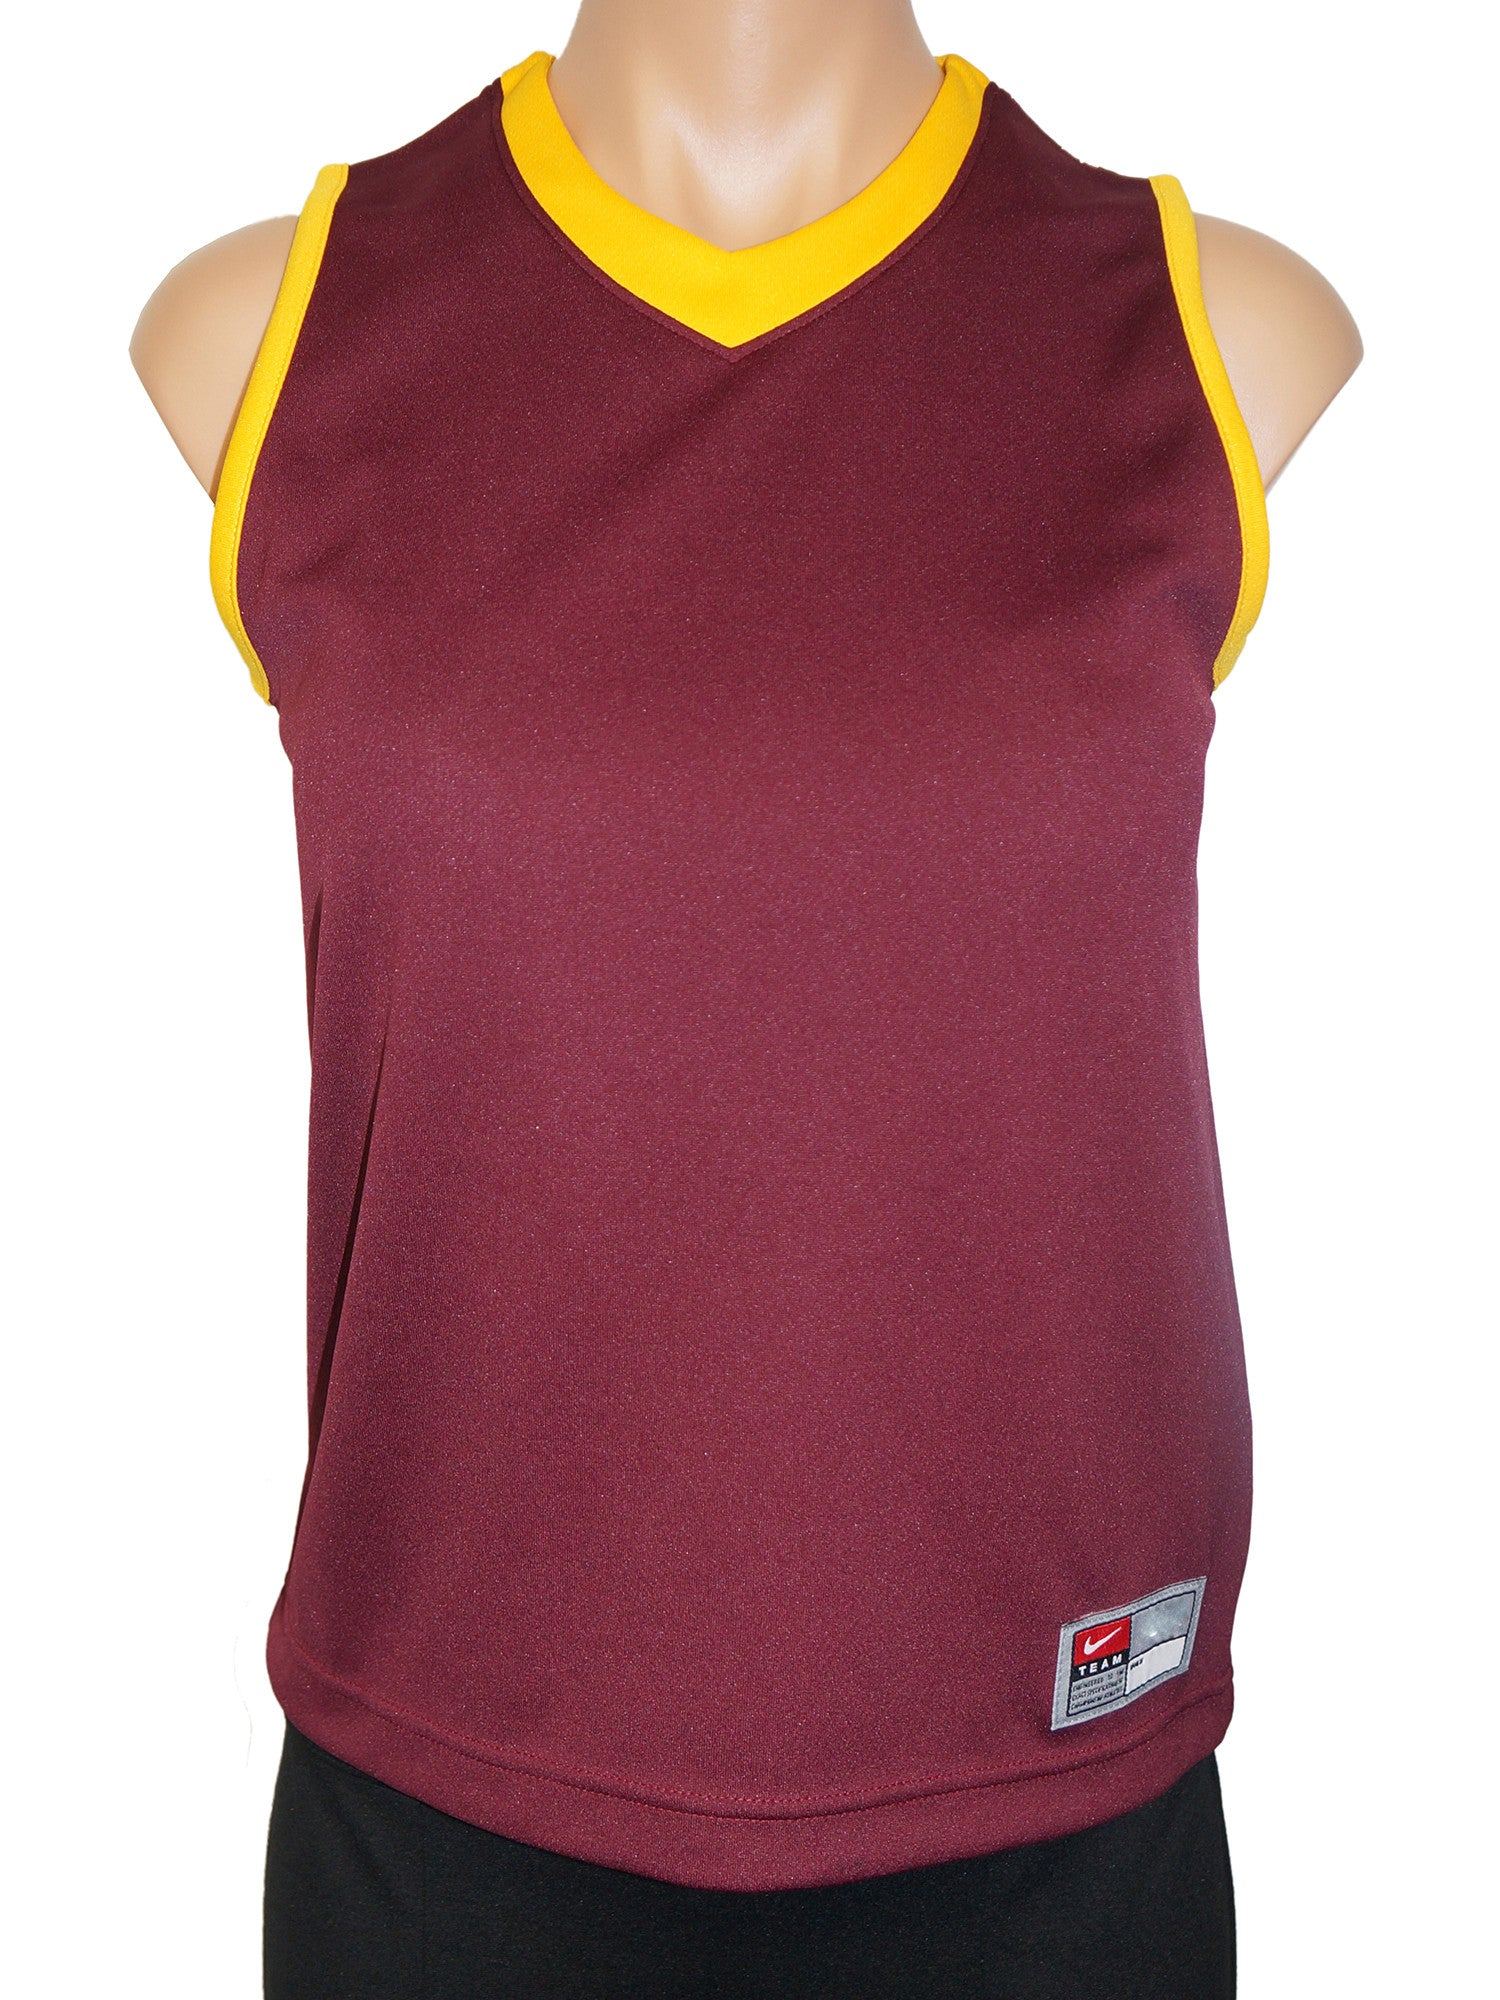 0ec5973cc5c Nike Women s Basketball Arizona State Devils Team Jersey – Retail Trunk